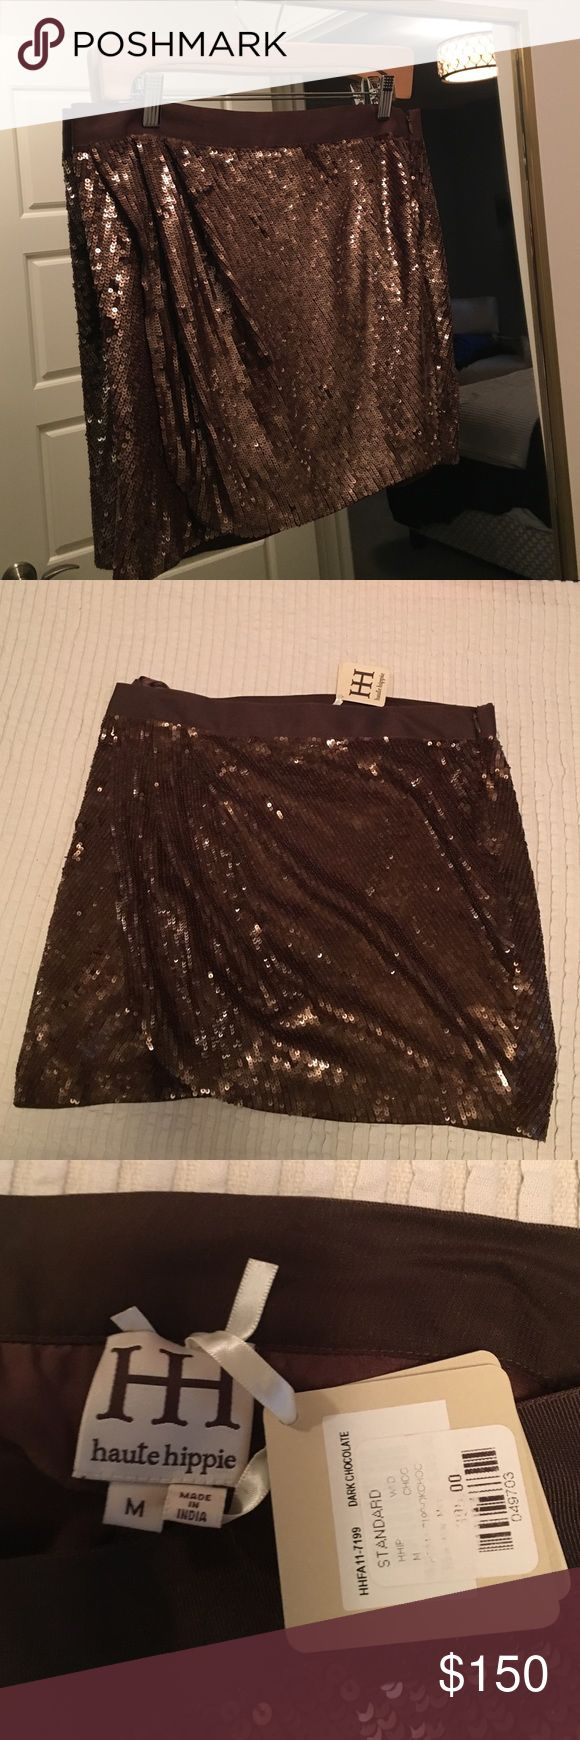 NWT Haute hippie sequin mini Perfect sequin mini for the holidays. Never worn, tags still attached. Haute Hippie Skirts Mini